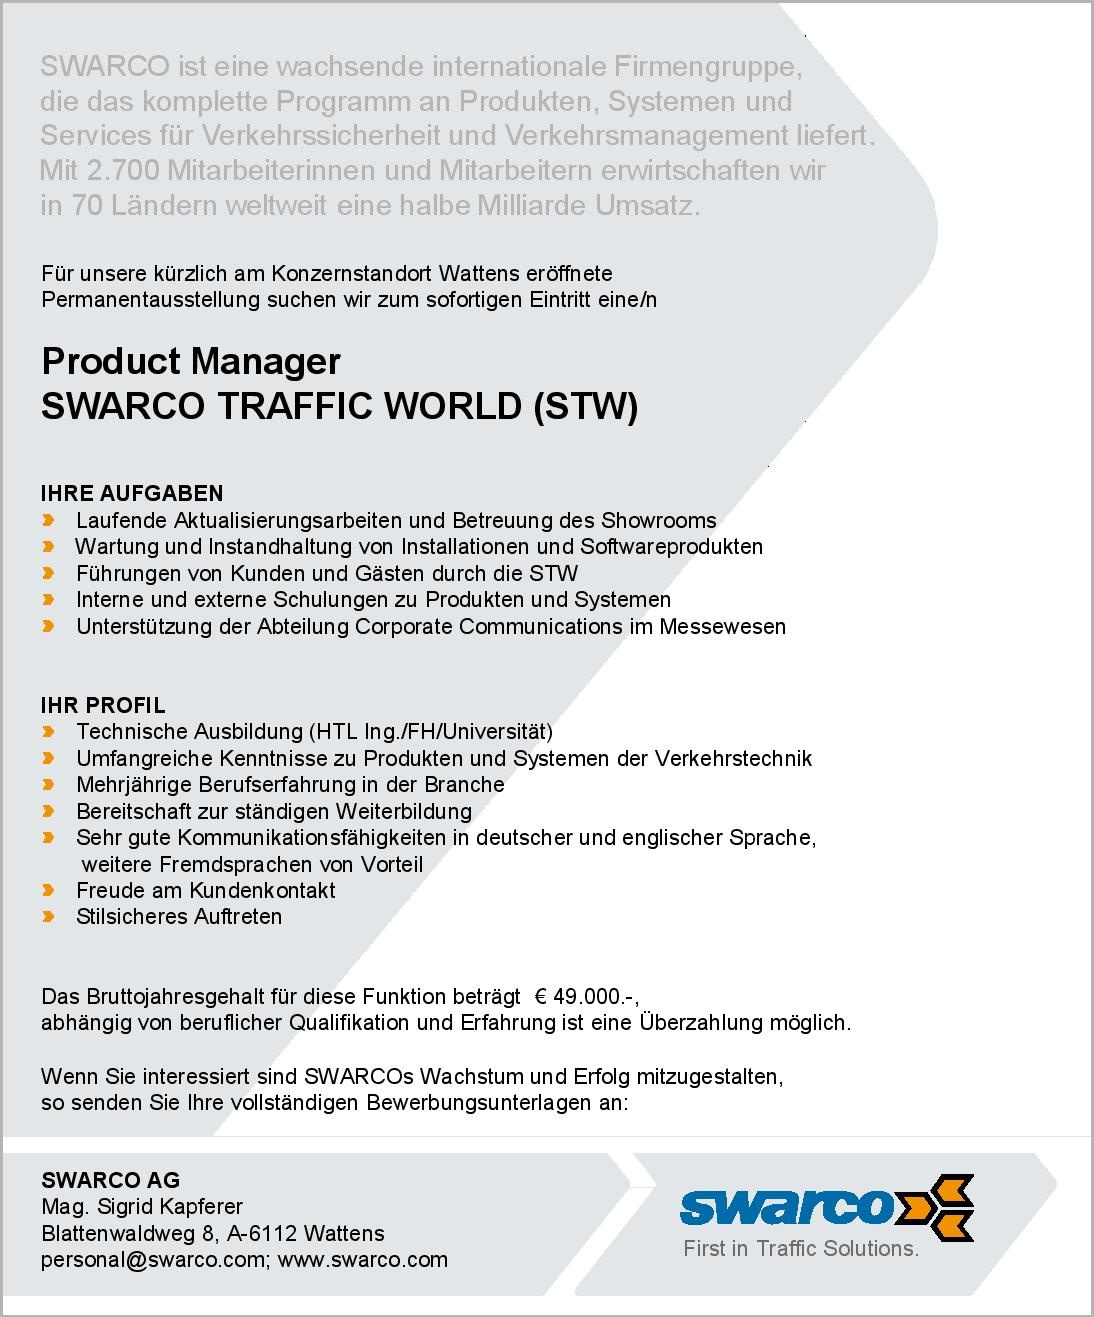 Product Manager SWARCO Traffic World (STW)